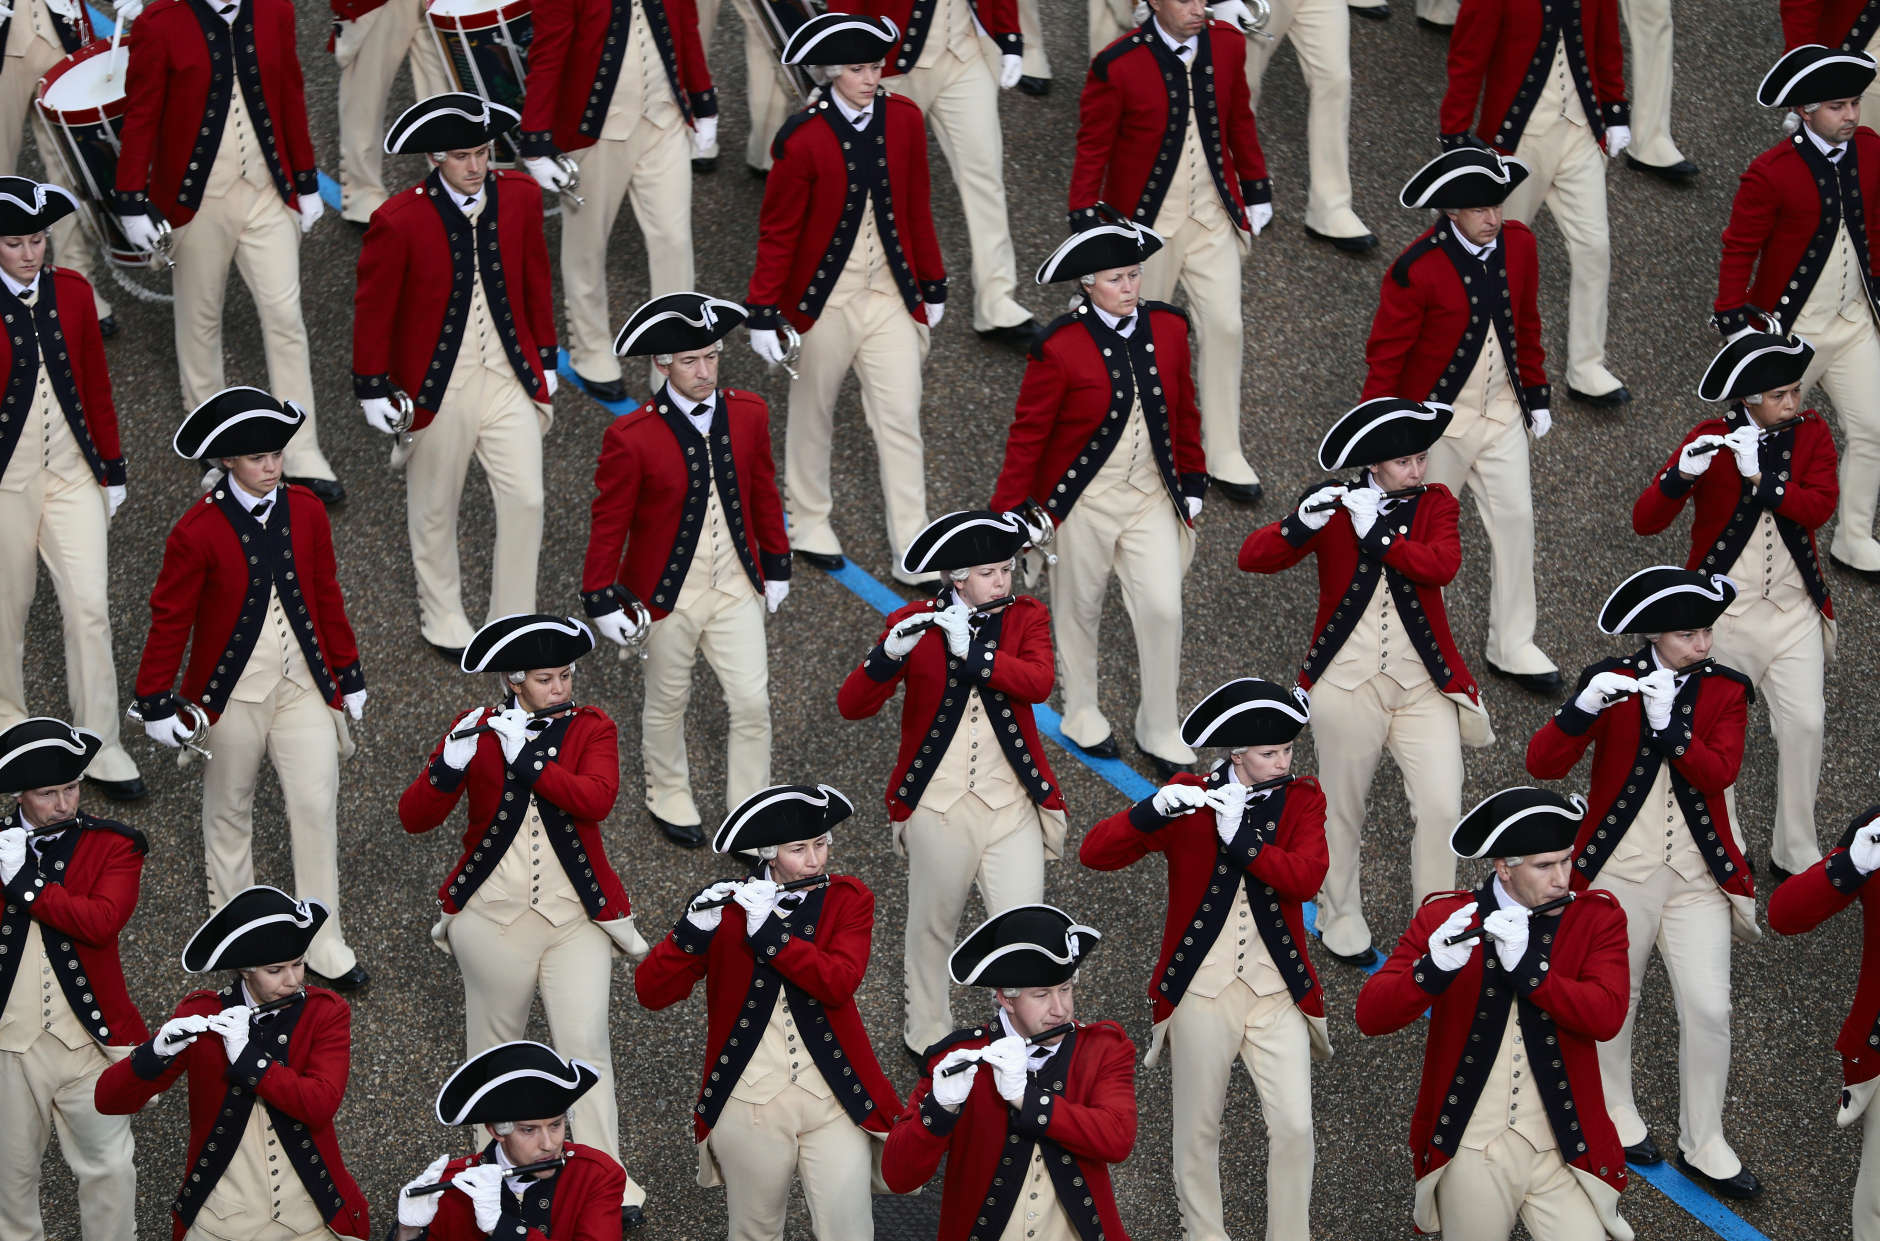 WASHINGTON, DC - JANUARY 20:  The U.S. Army Old Guard Fife and Drum Corps marches during the Inaugural Parade on January 20, 2017 in Washington, DC. Donald J. Trump was sworn in today as the 45th president of the United States.  (Photo by Joe Raedle/Getty Images)